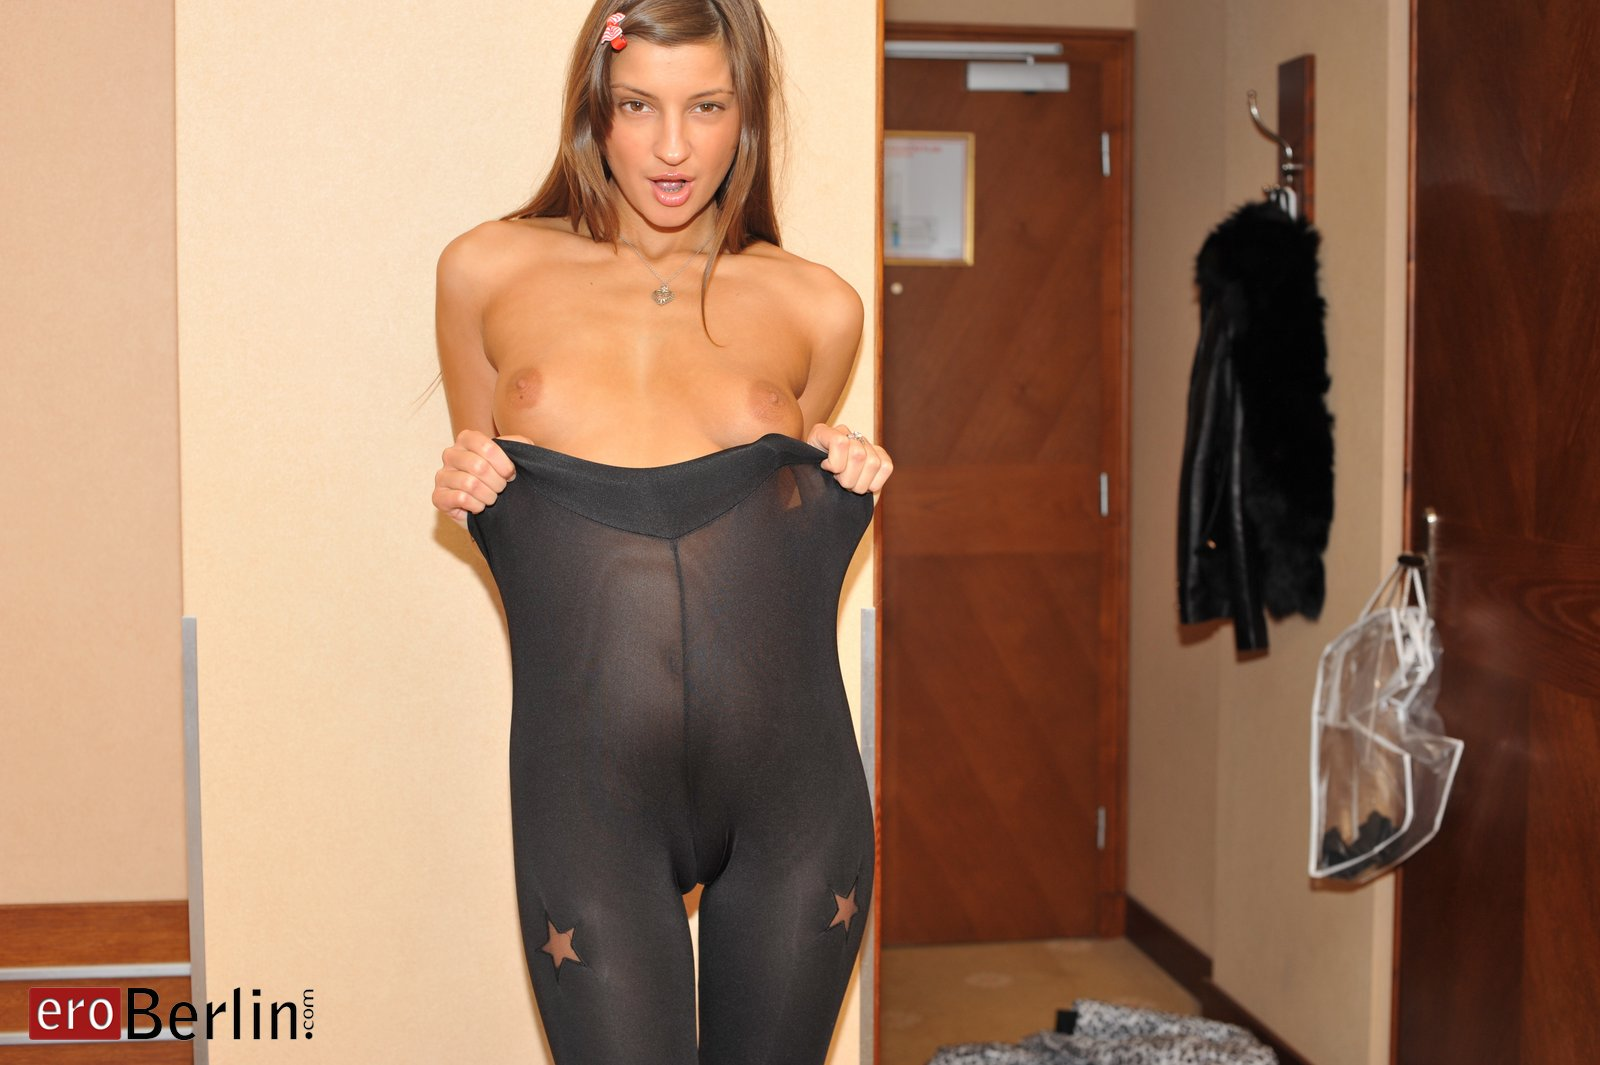 naked-girls-in-tights-pantyhose-mix-vol3-71